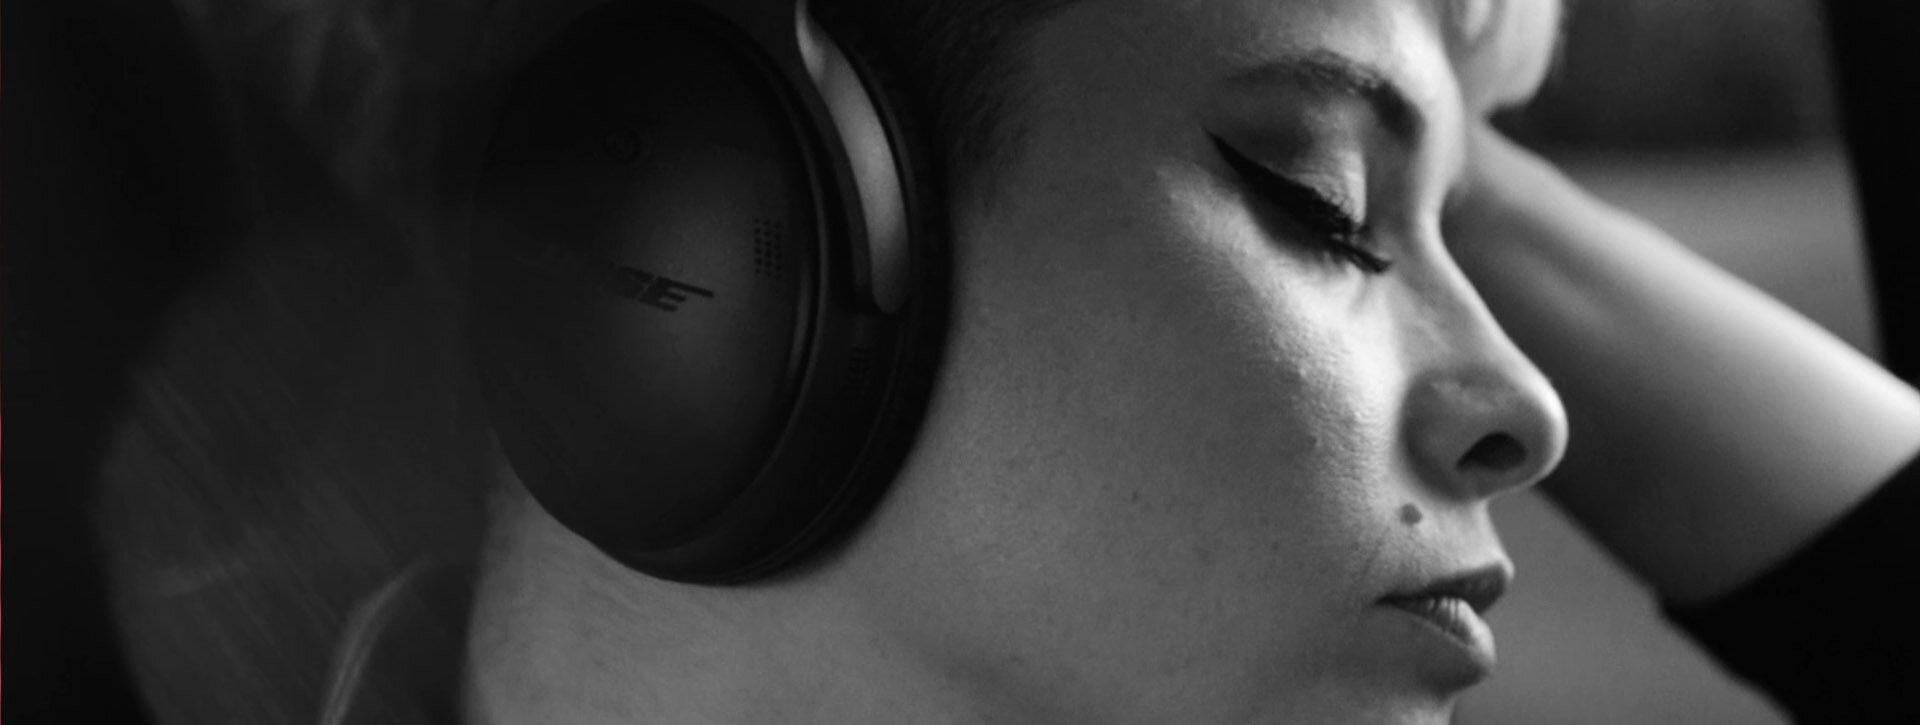 BOSE | BETTER SOUND SESSIONS